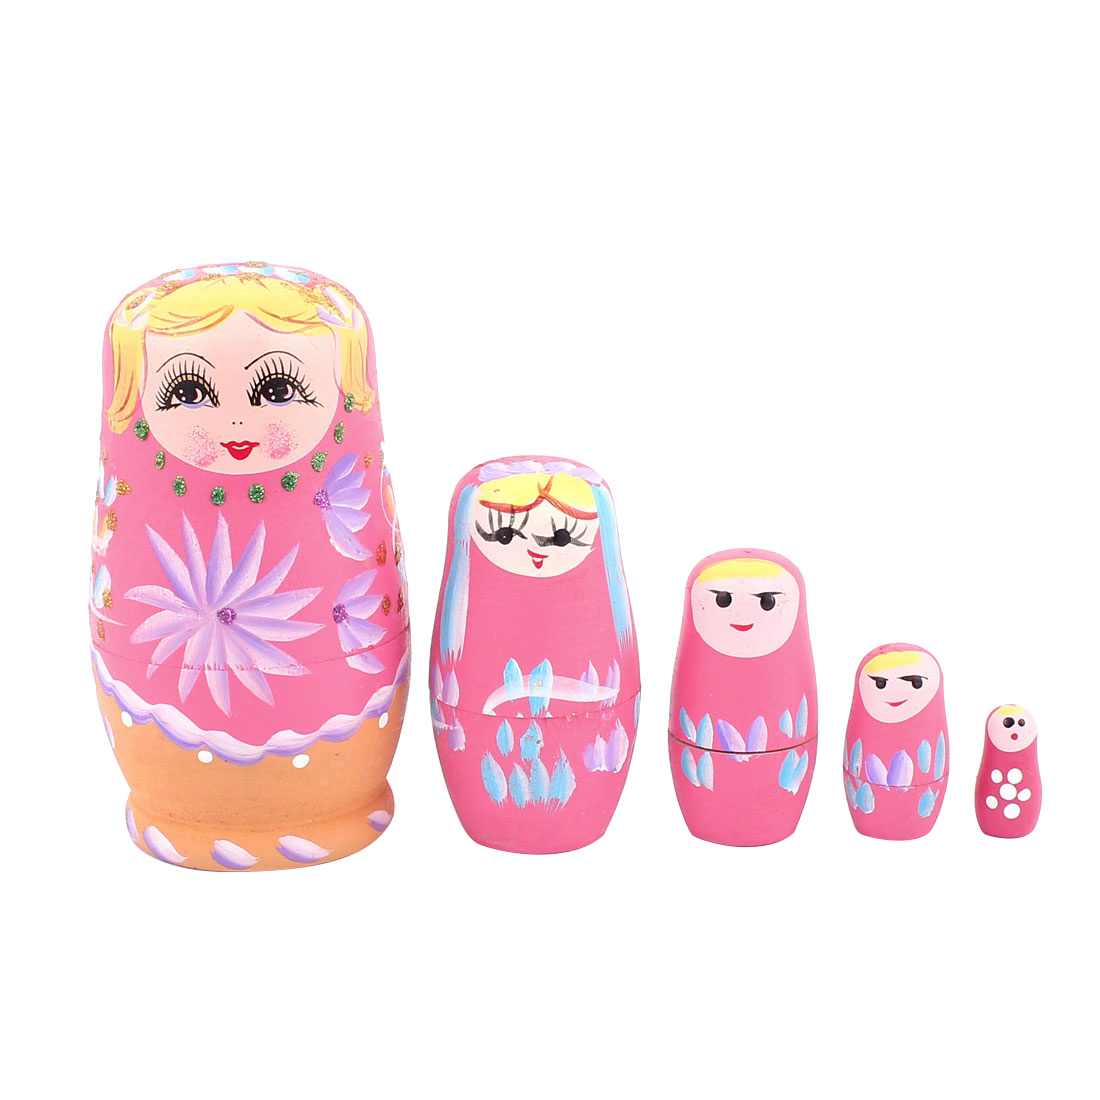 Russian Babushka Flowers Painted Nesting Matryoshka Stacking Dolls Pink 5 in 1